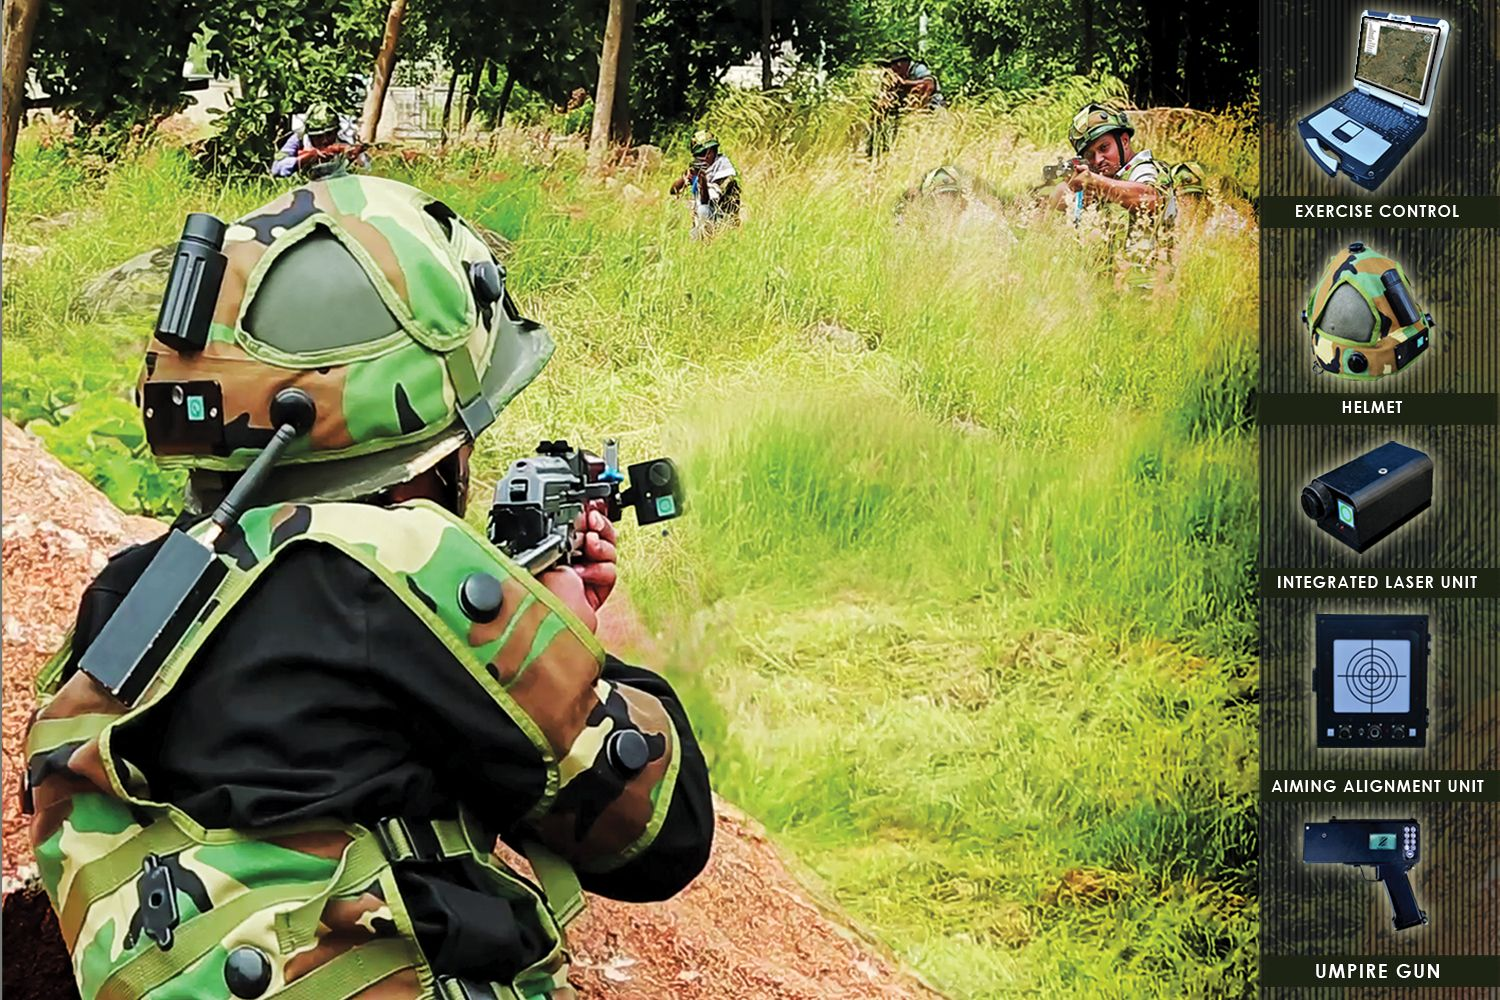 Tactical Engagement Simulator with Indoor Tracking System (ITS)